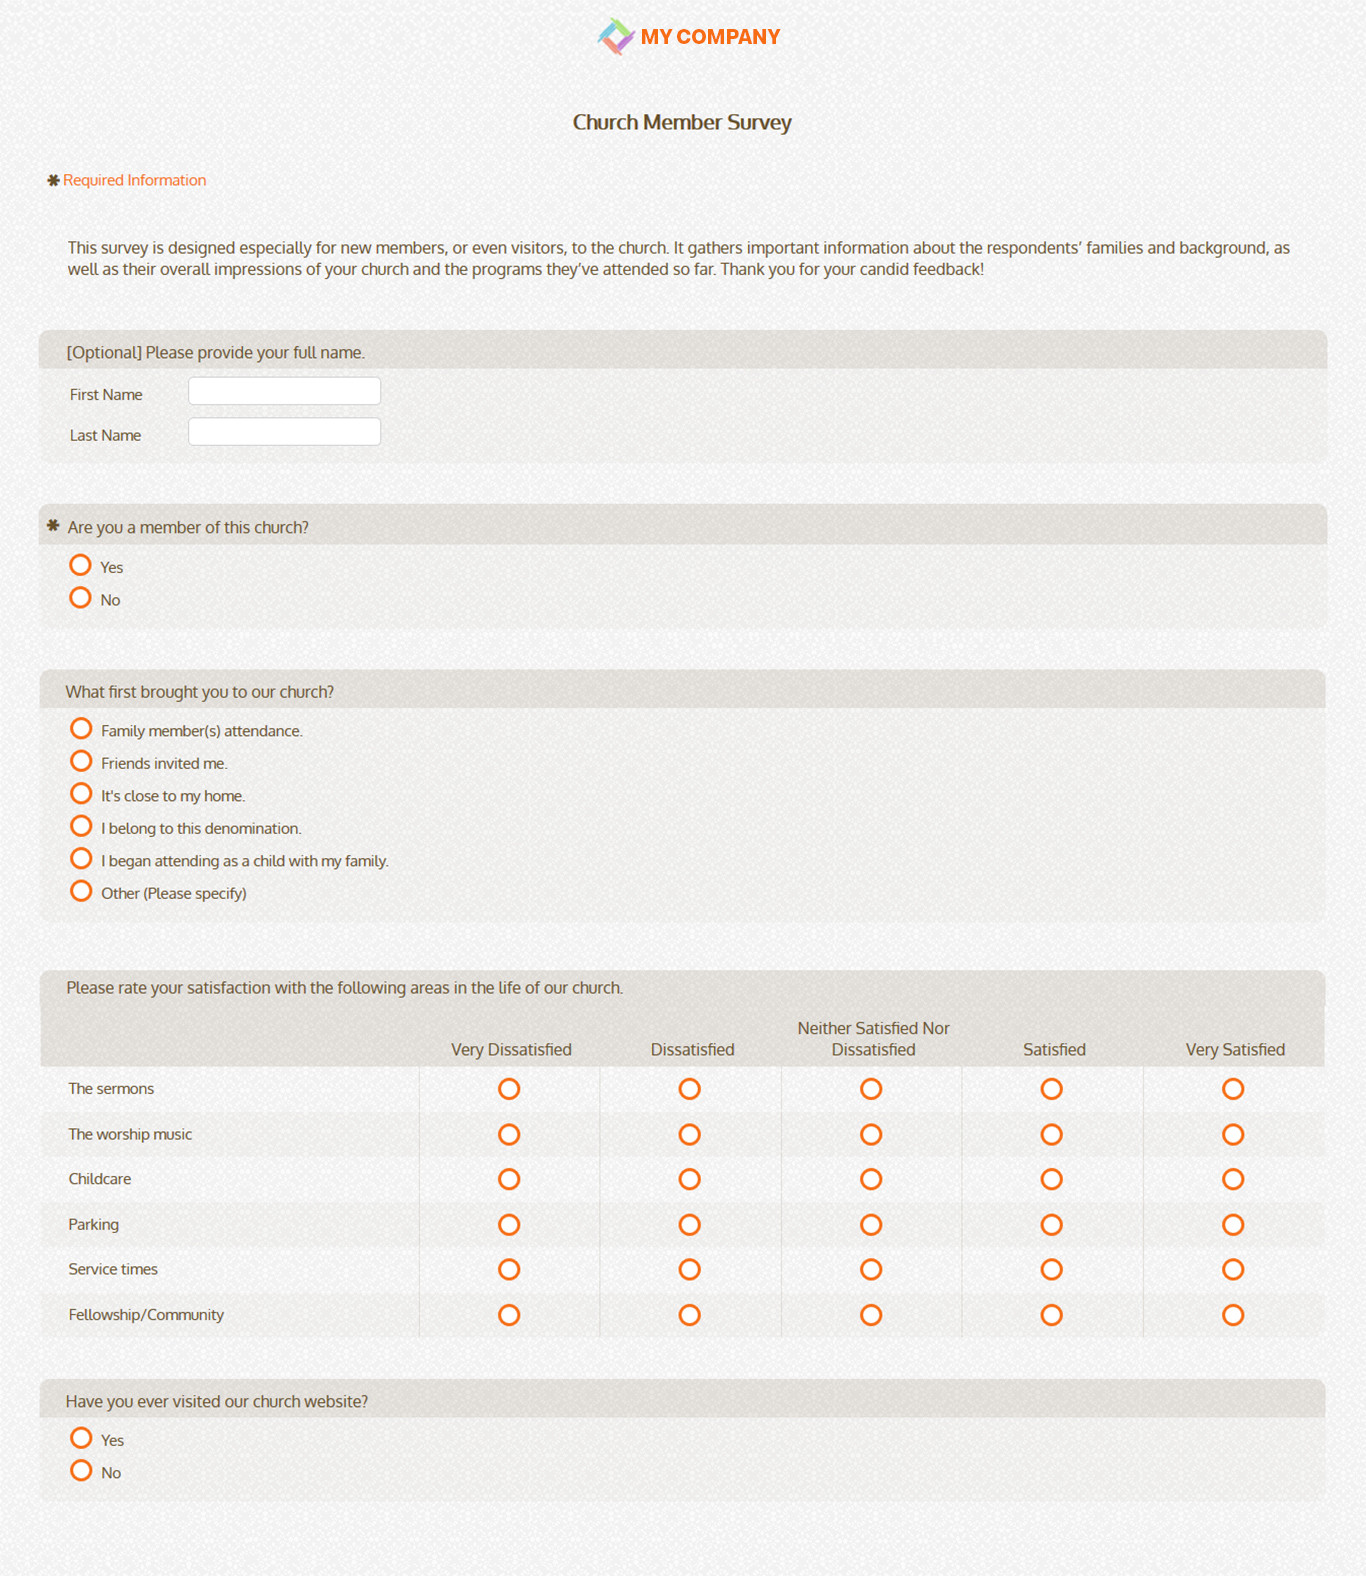 Church Security assessment form Awesome Church Member Survey Templates & Questions